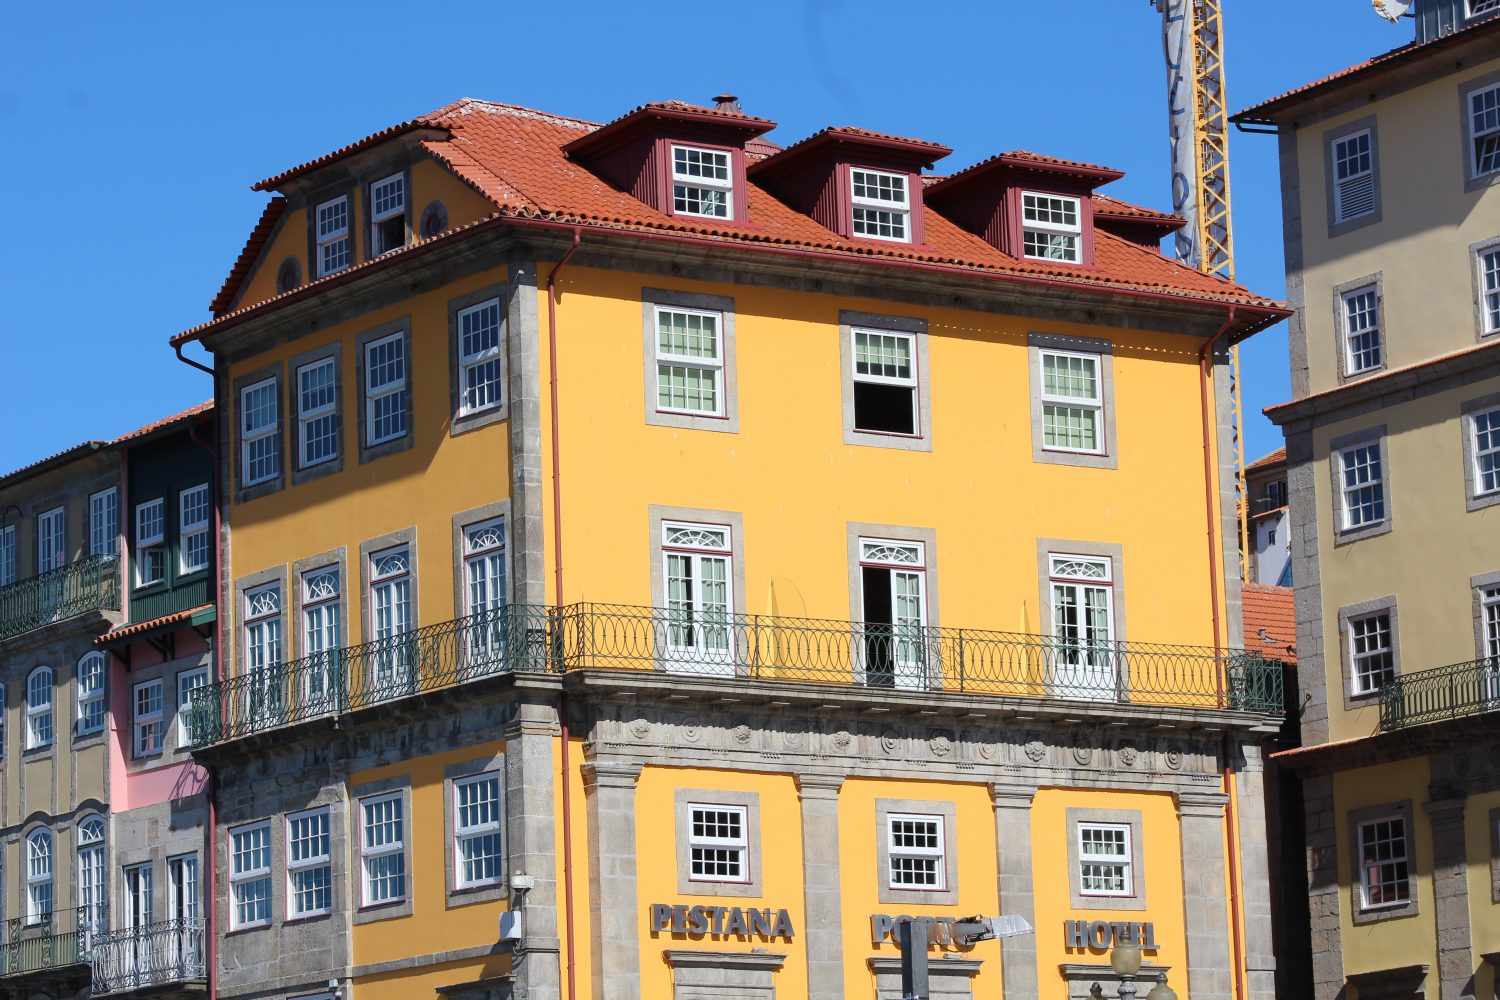 Pestana Porto Hotel by At Porto